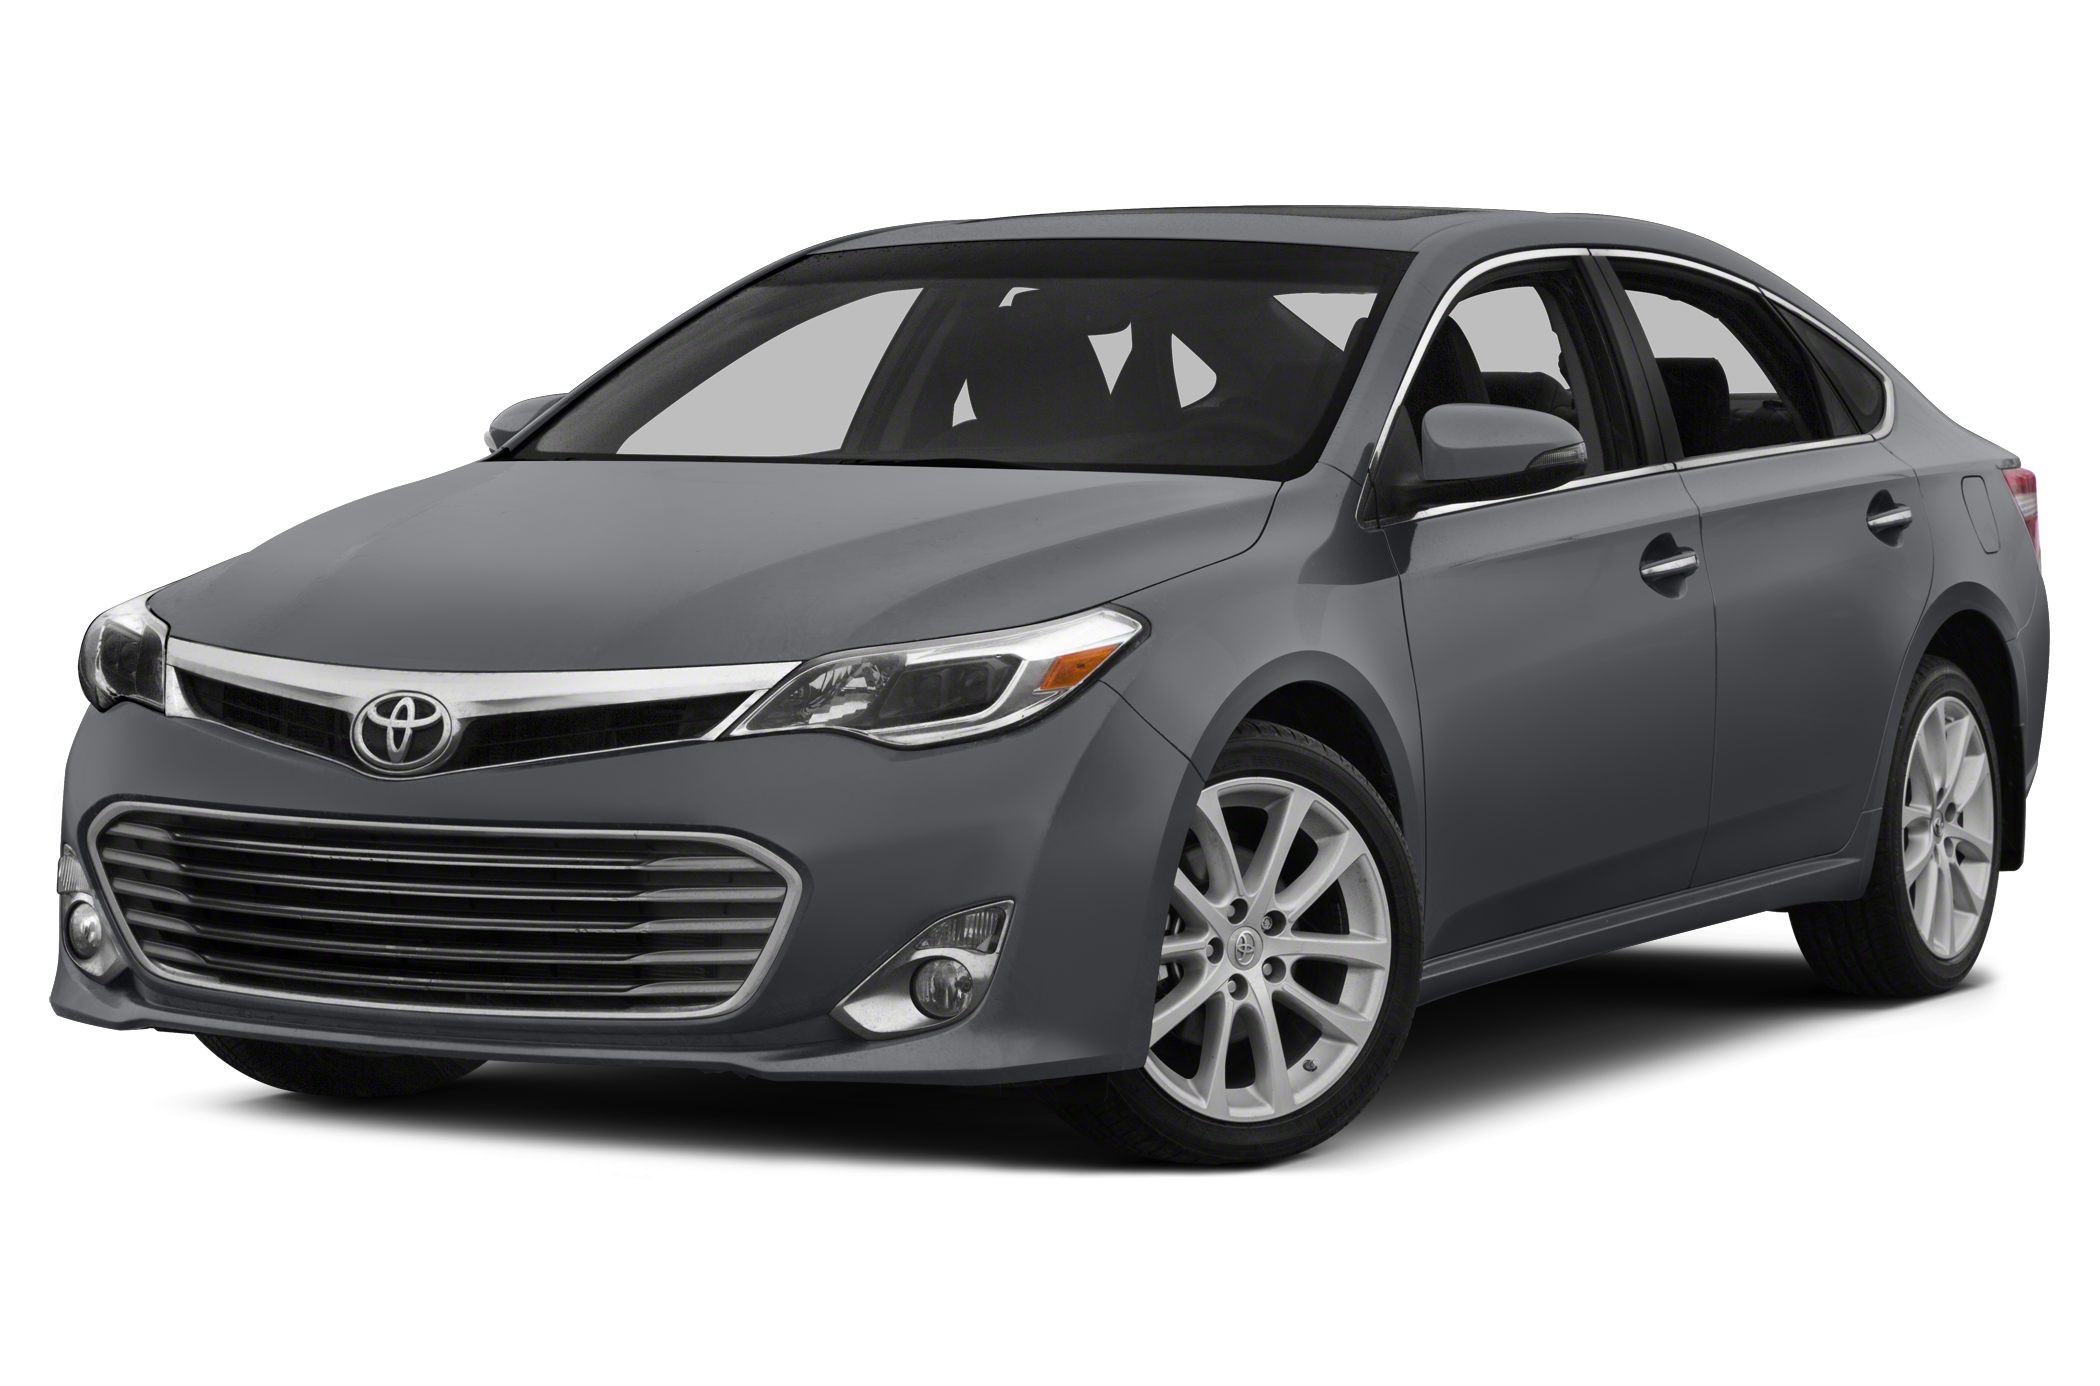 2015 Toyota Avalon XLE Touring Sedan for sale in Santa Rosa for $35,276 with 0 miles